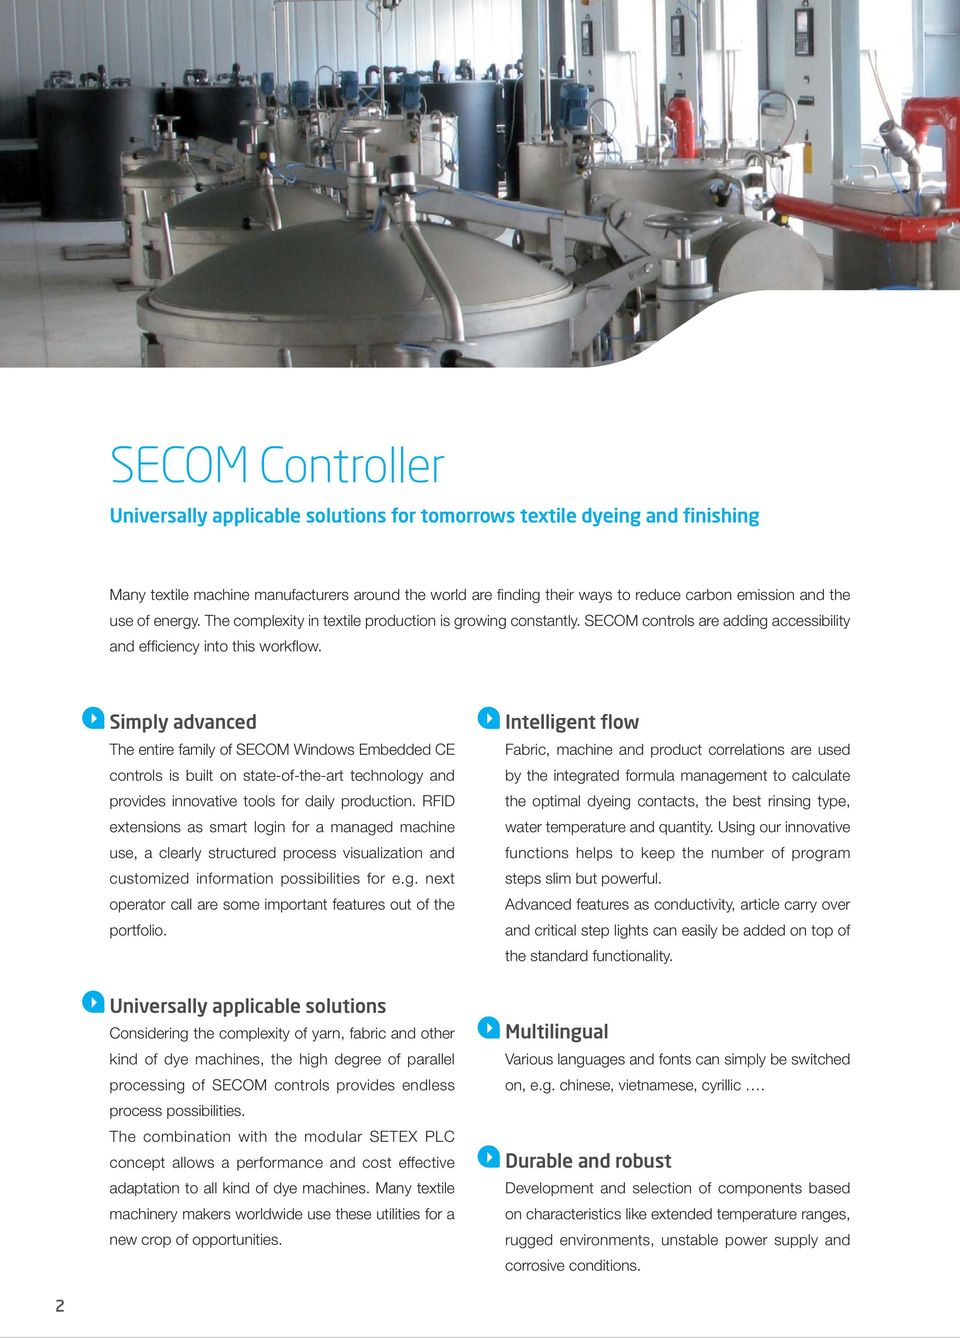 Simply advanced The entire family of SECOM Windows Embedded CE controls is built on state-of-the-art technology and provides innovative tools for daily production.